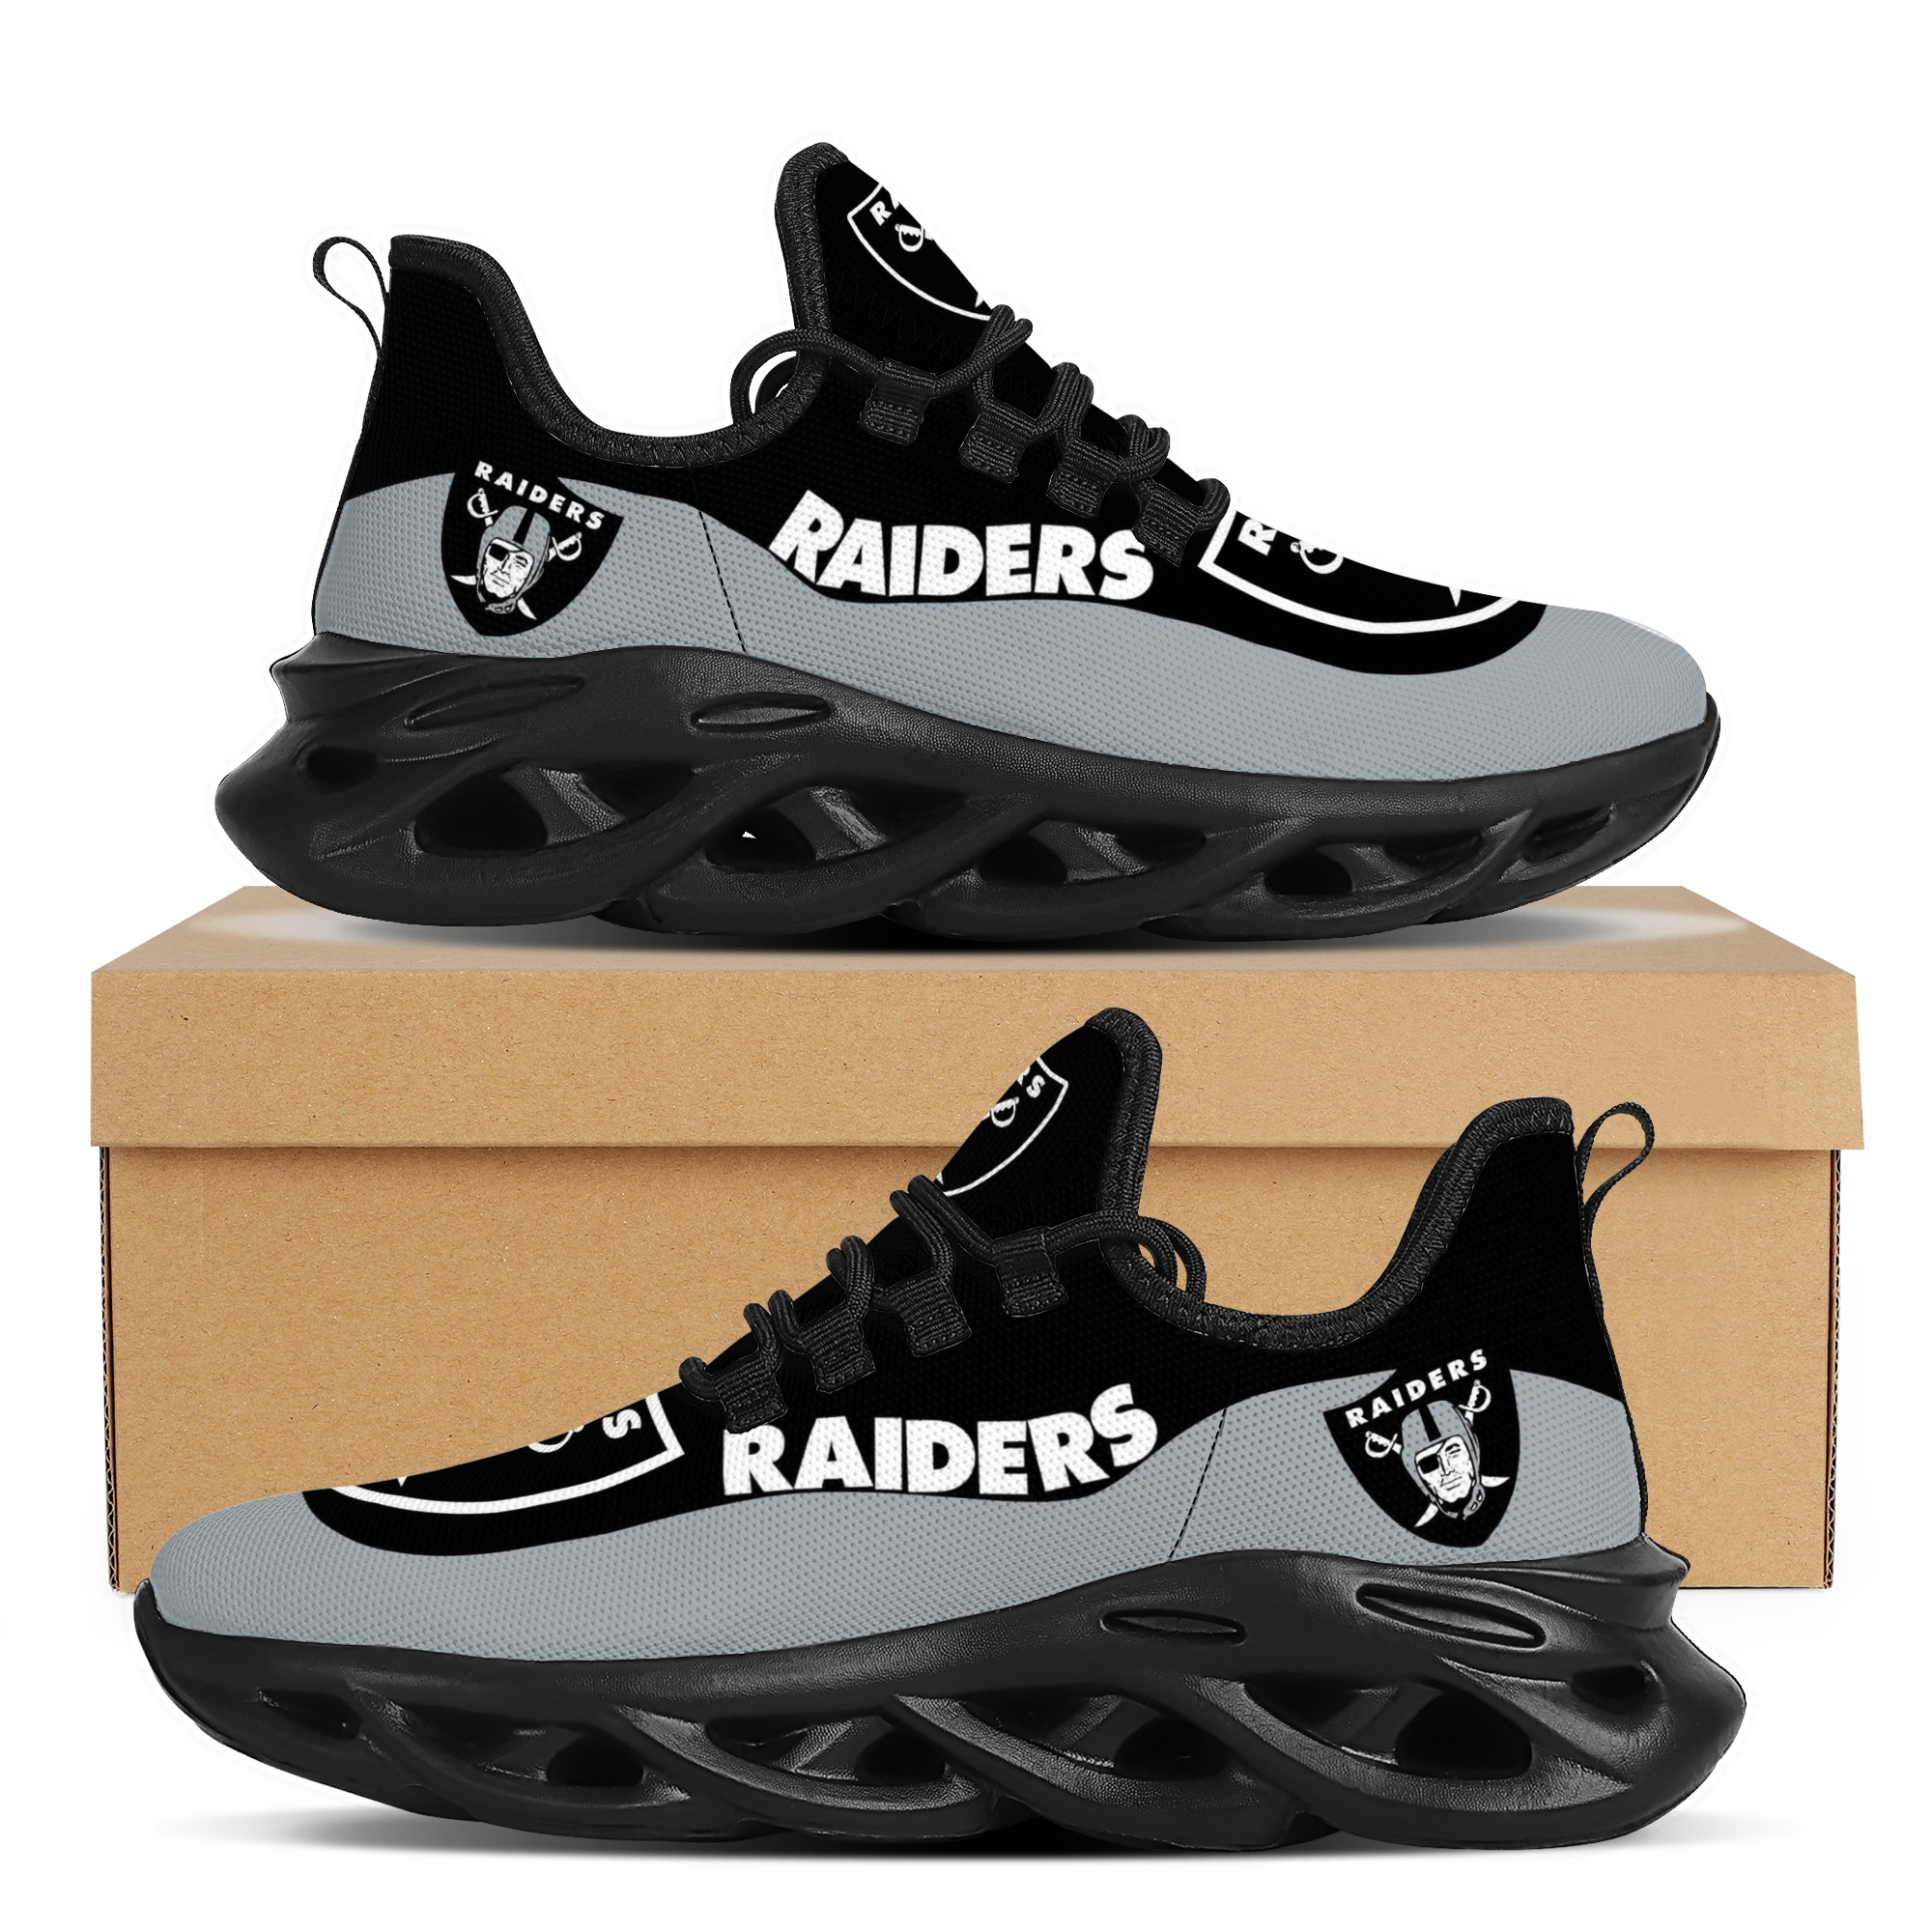 Men's Las Vegas Raiders Flex Control Sneakers 001